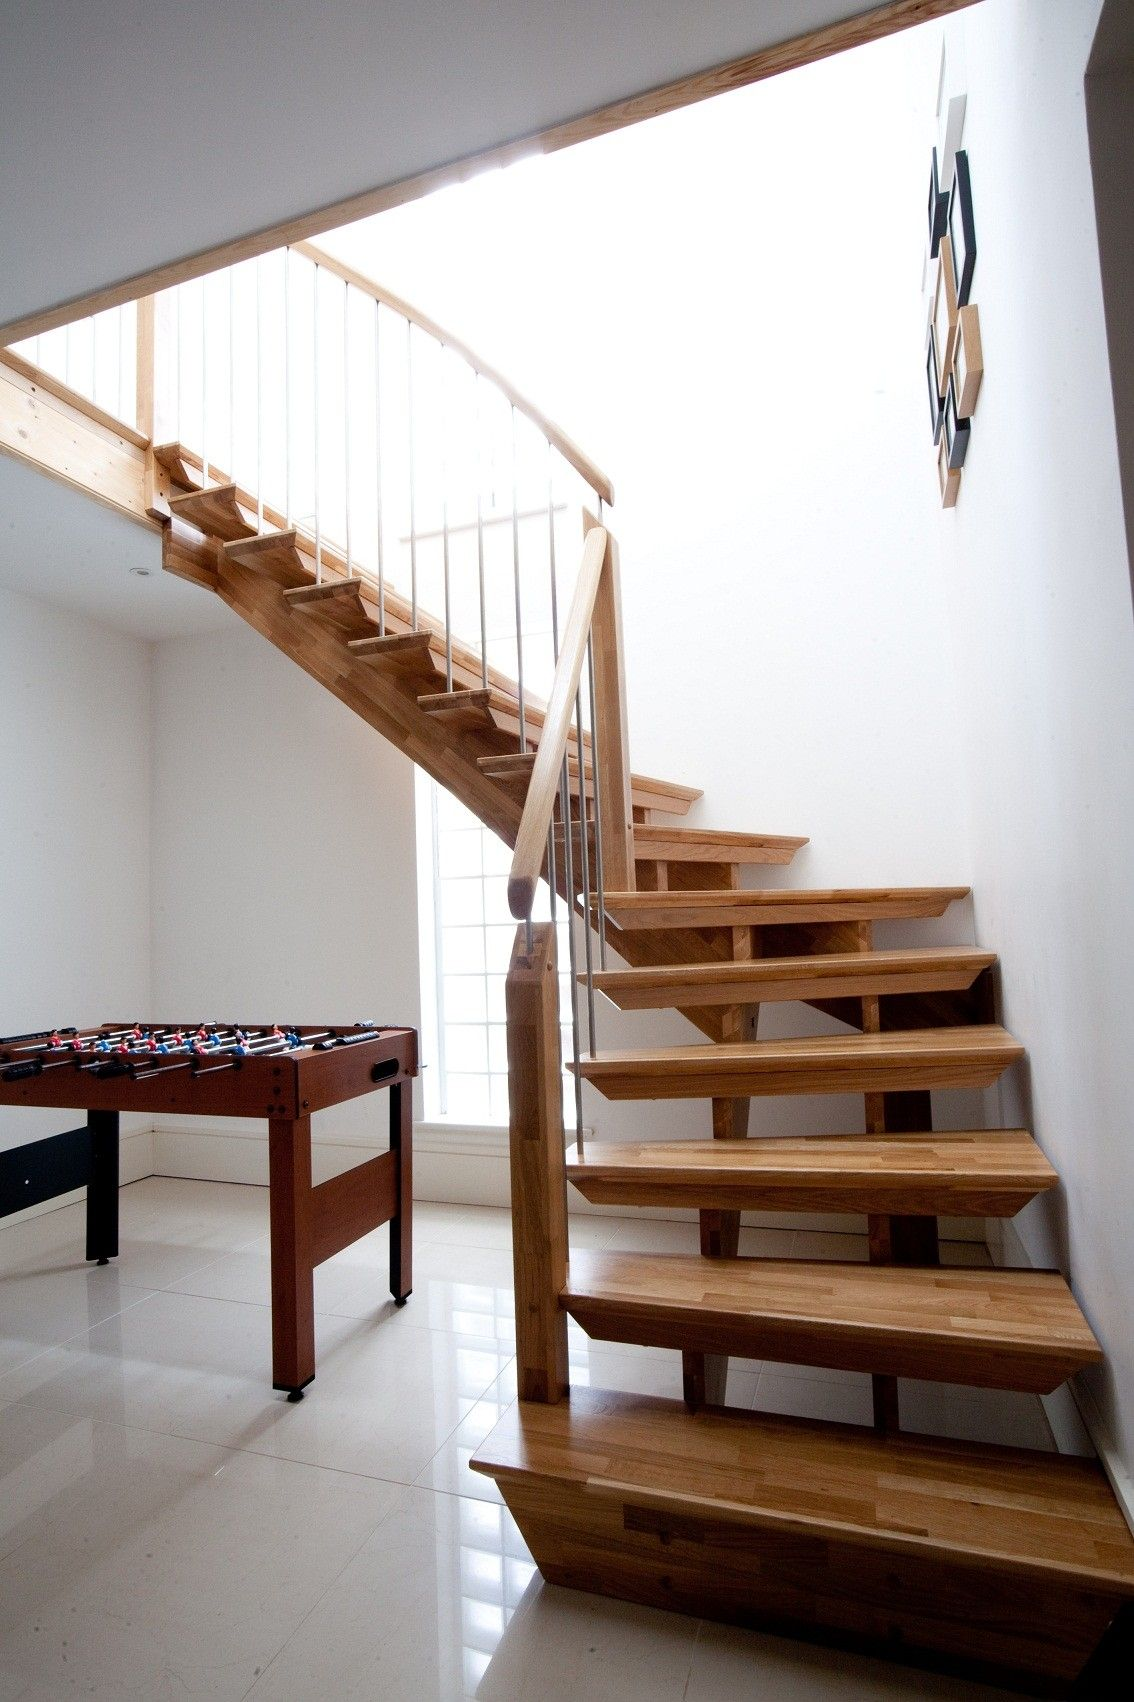 Awesome Modern Simple Staircase Design Ideas With Varnished Wooden